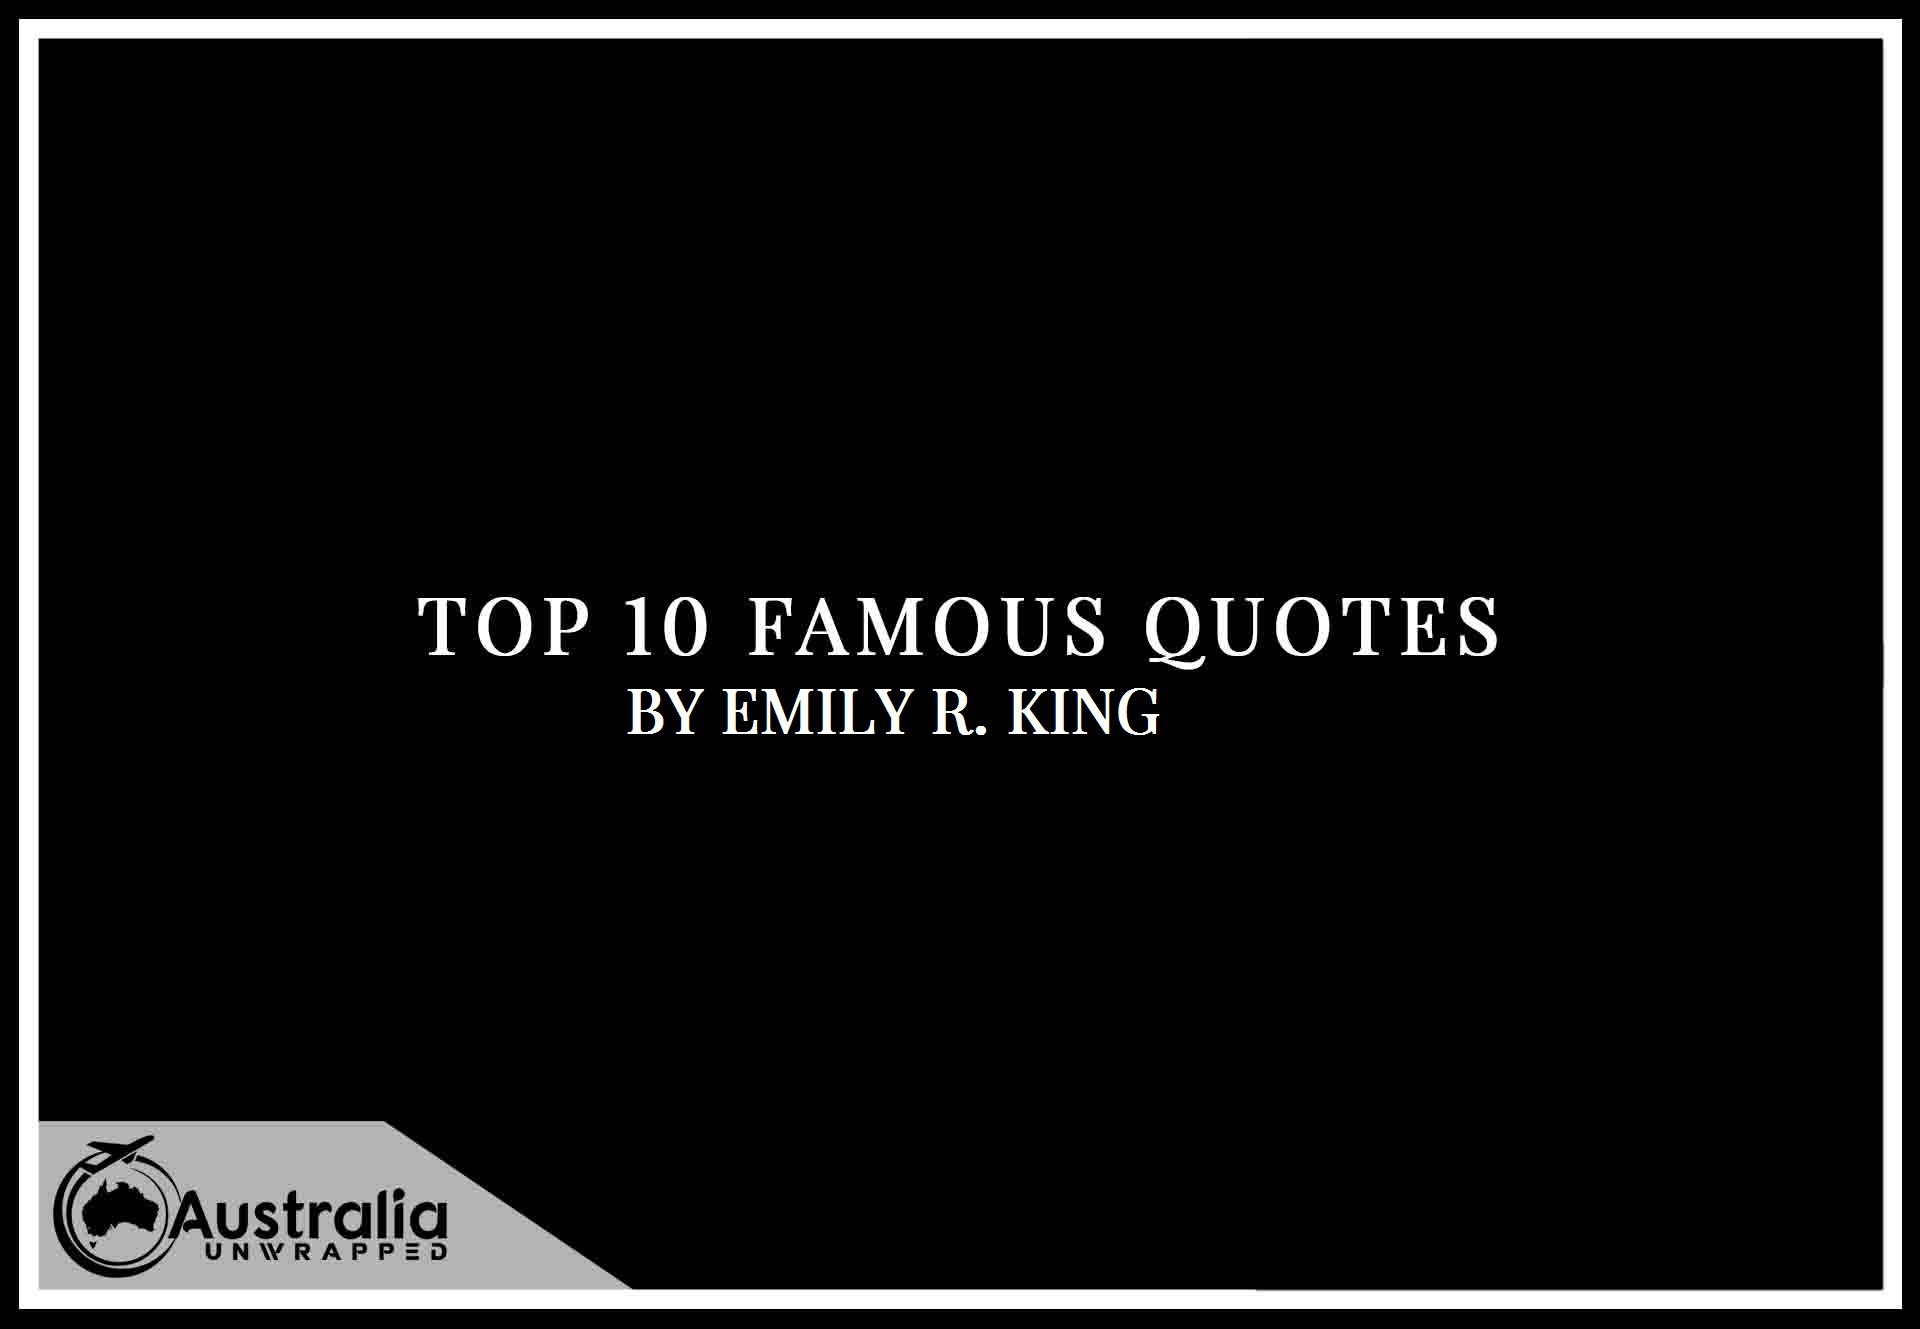 Emily R. King's Top 10 Popular and Famous Quotes